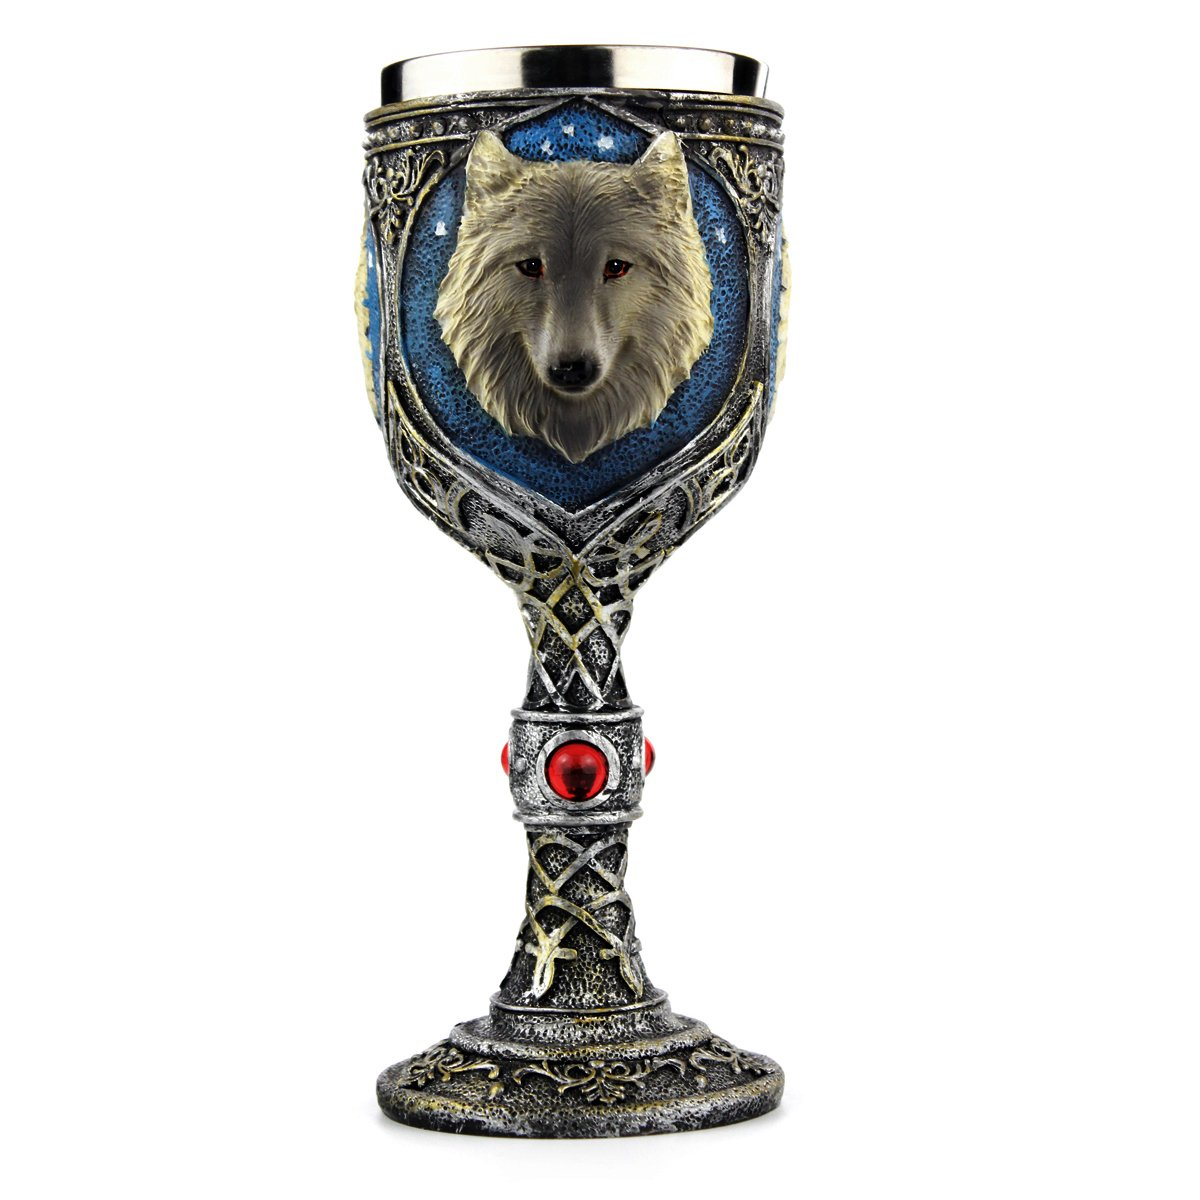 Stainless Steel Wolf Goblet, EZESO Resin 3D Wolf Coffee Cup Stainless Steel Travel Tea Wine Beer Mugs(Goblet)